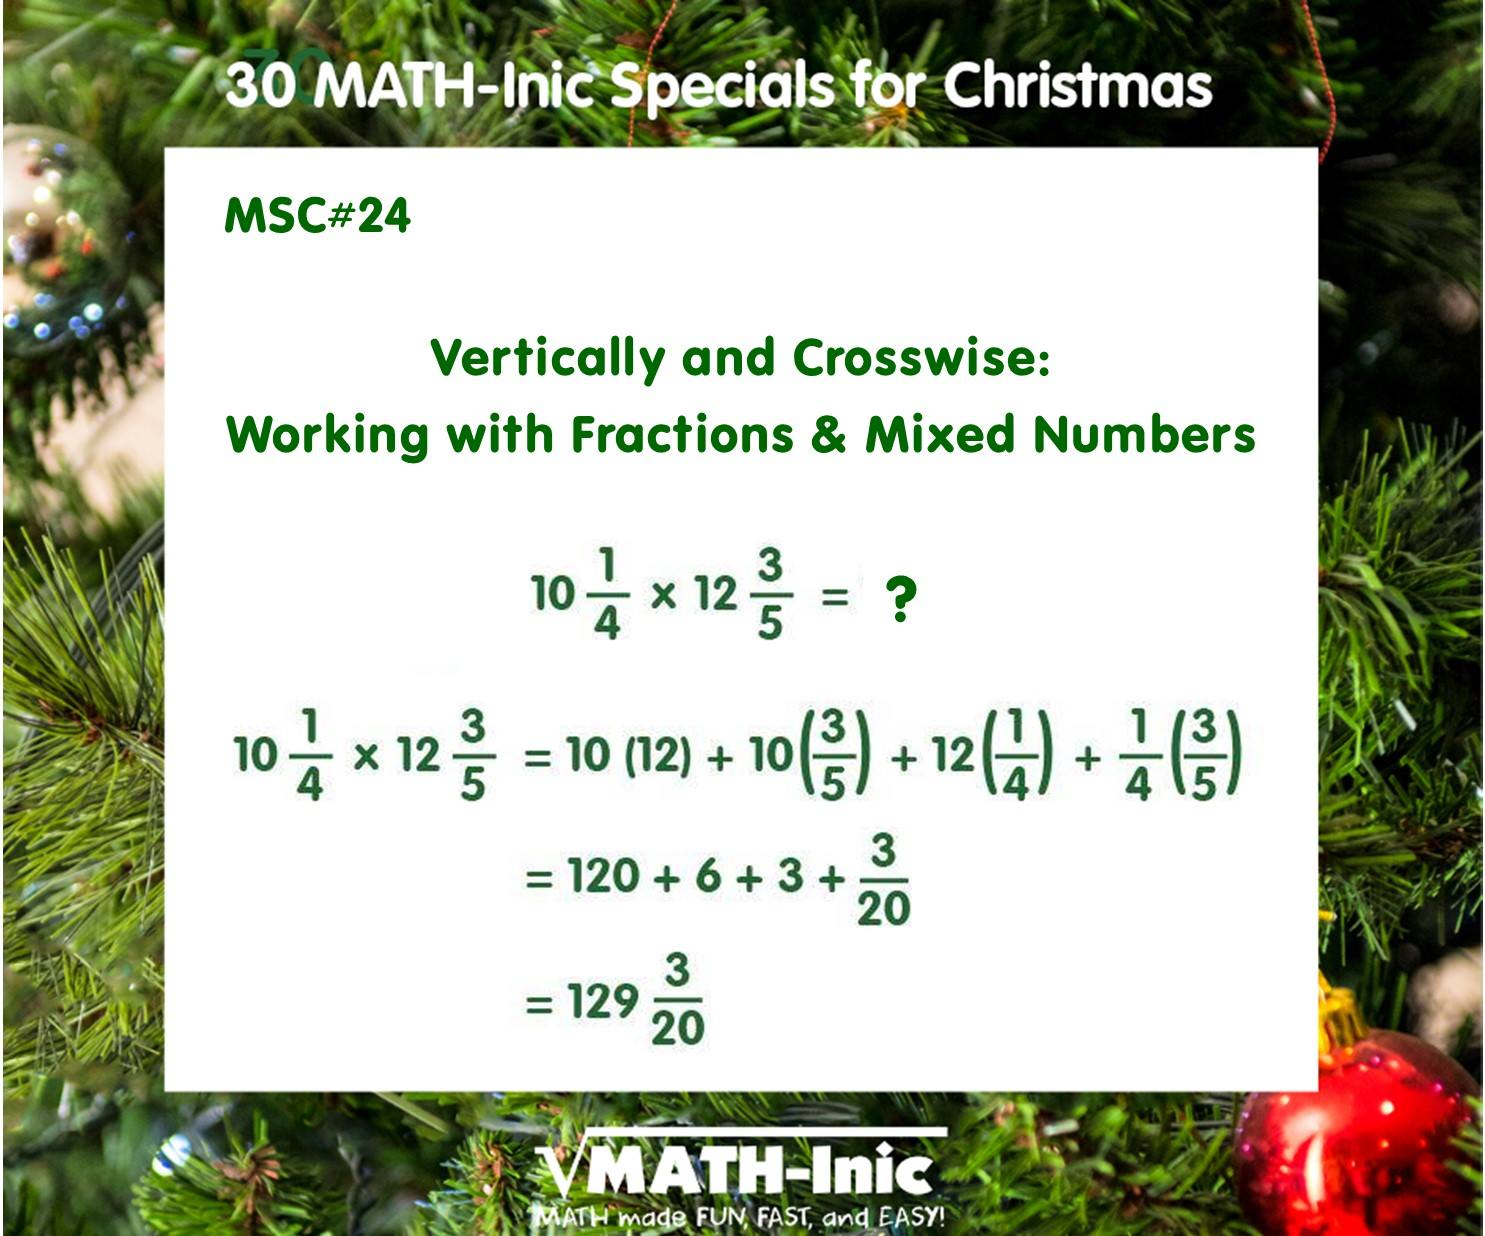 MSC #24 – Vertically And Crosswise: Working With Fractions And Mixed Numbers